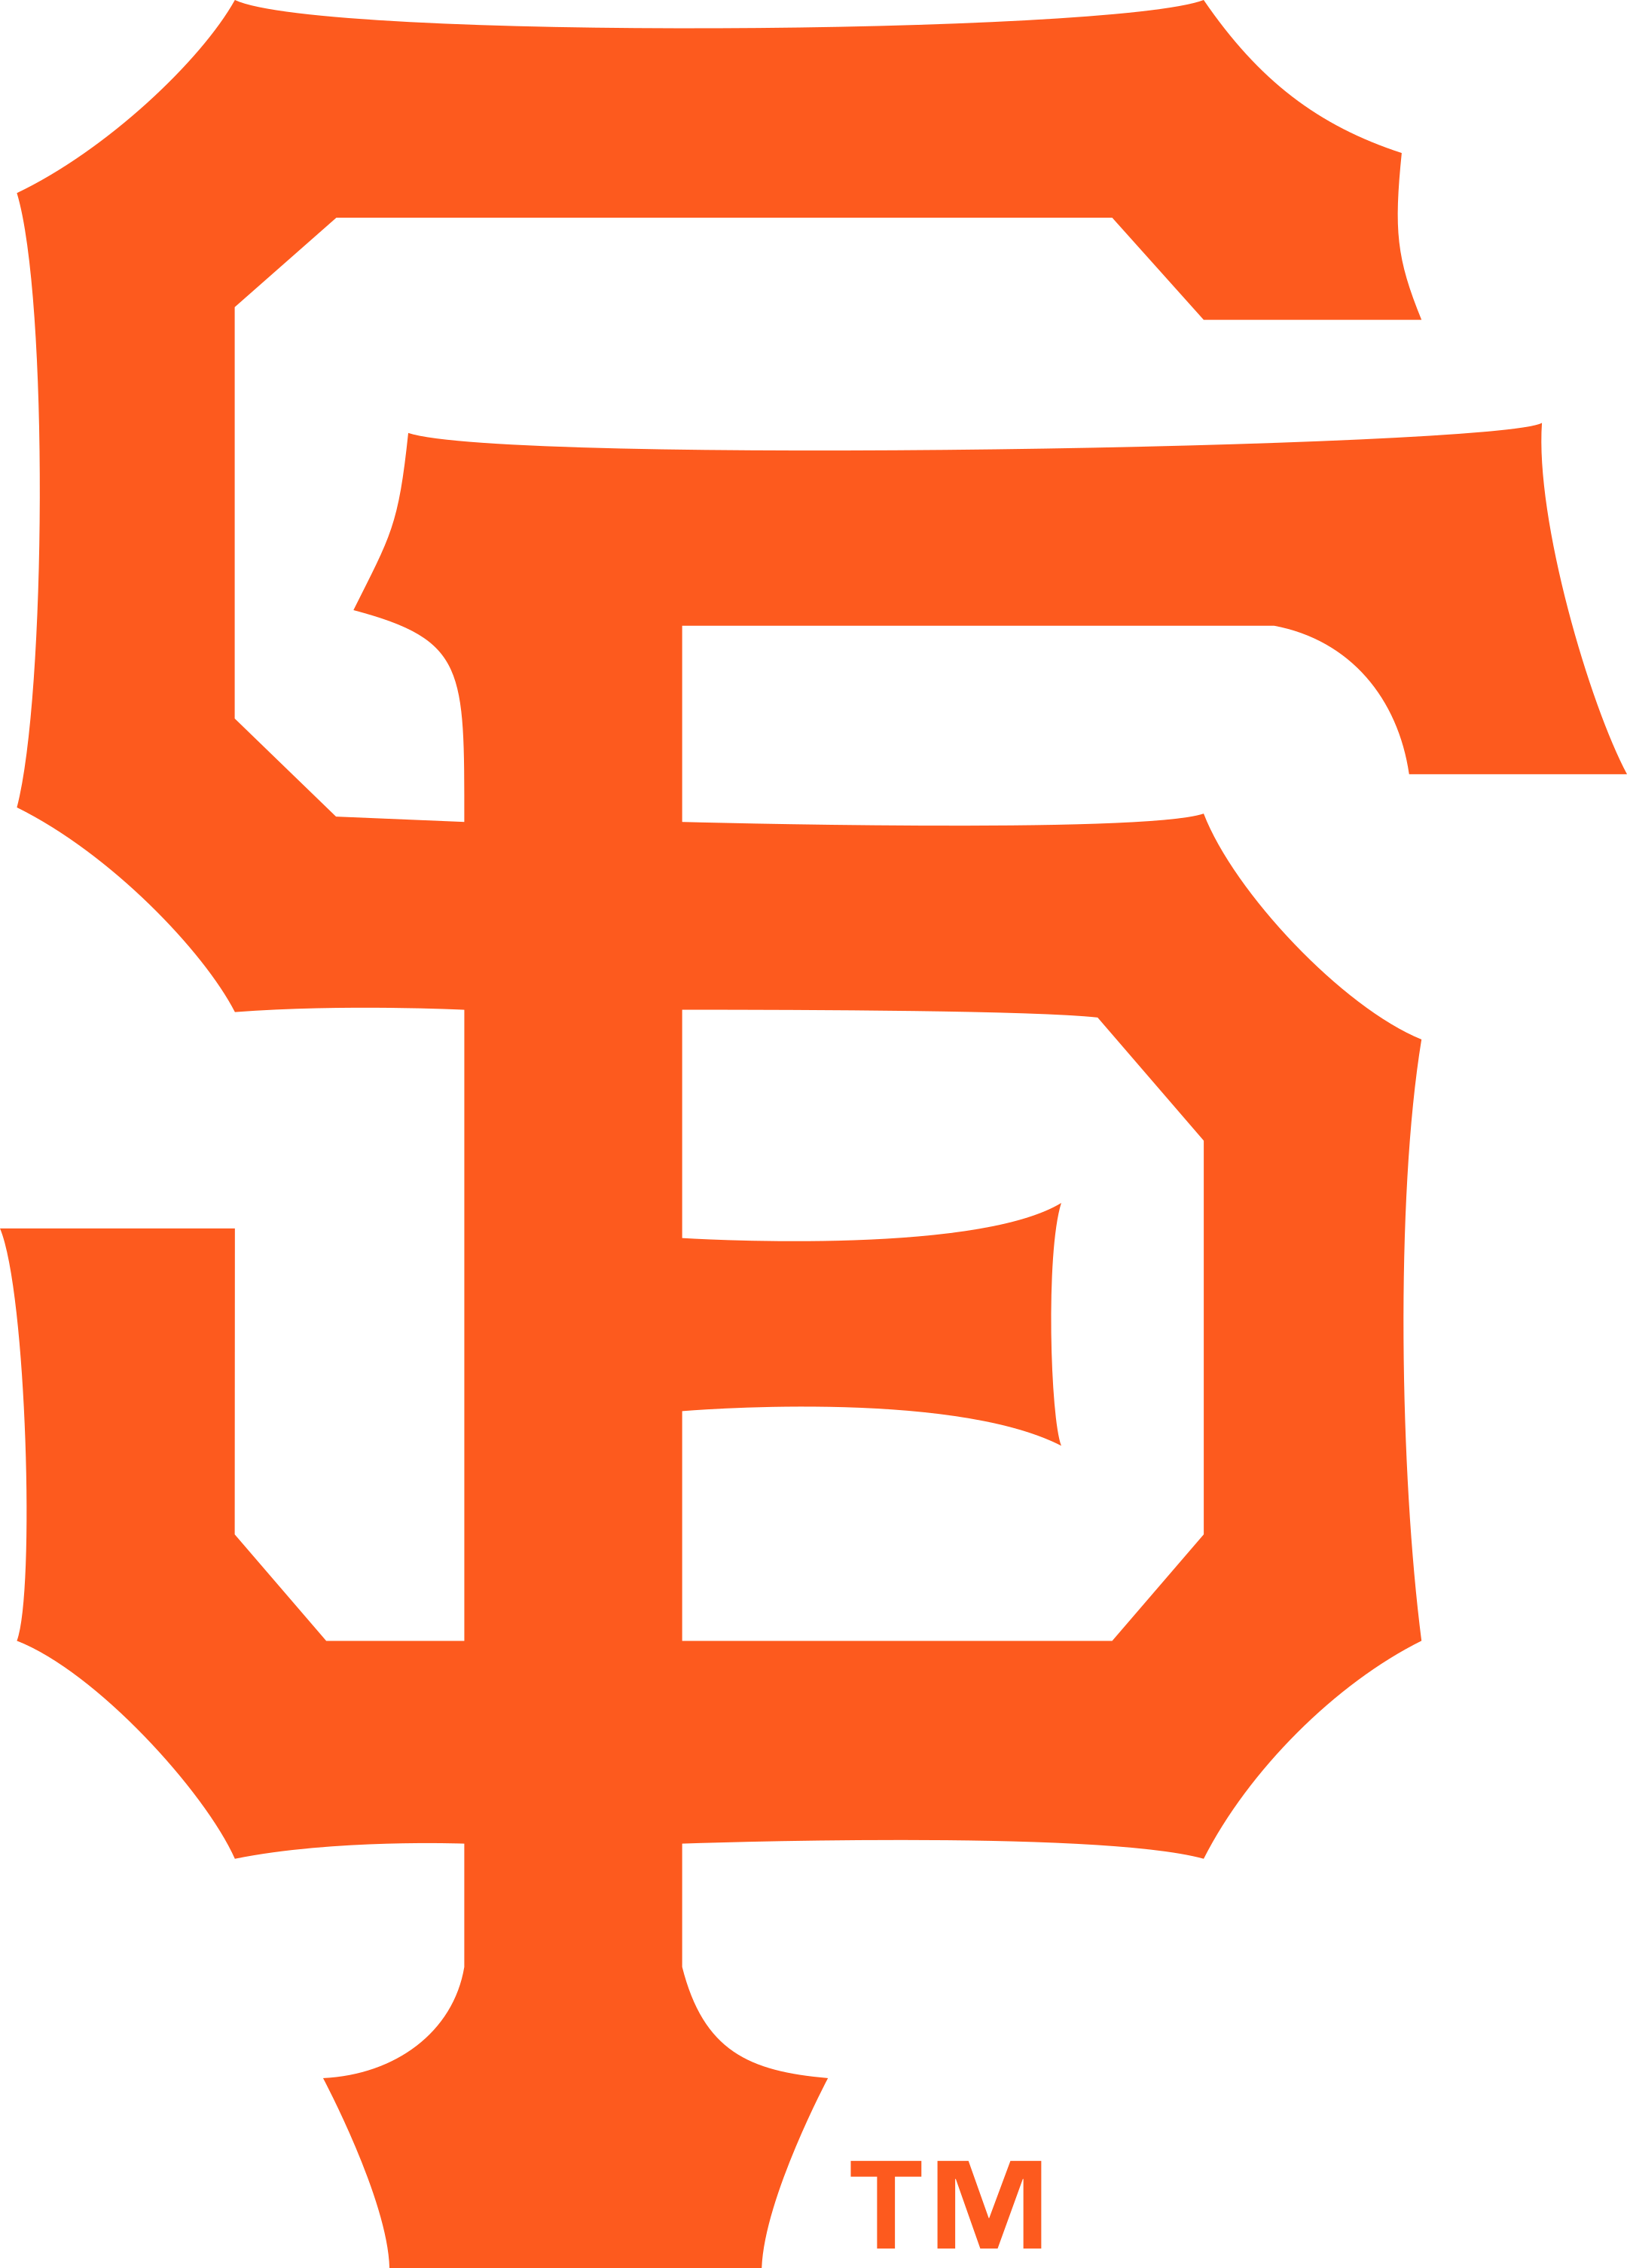 san francisco giants logo 1 - San Francisco Giants Logo